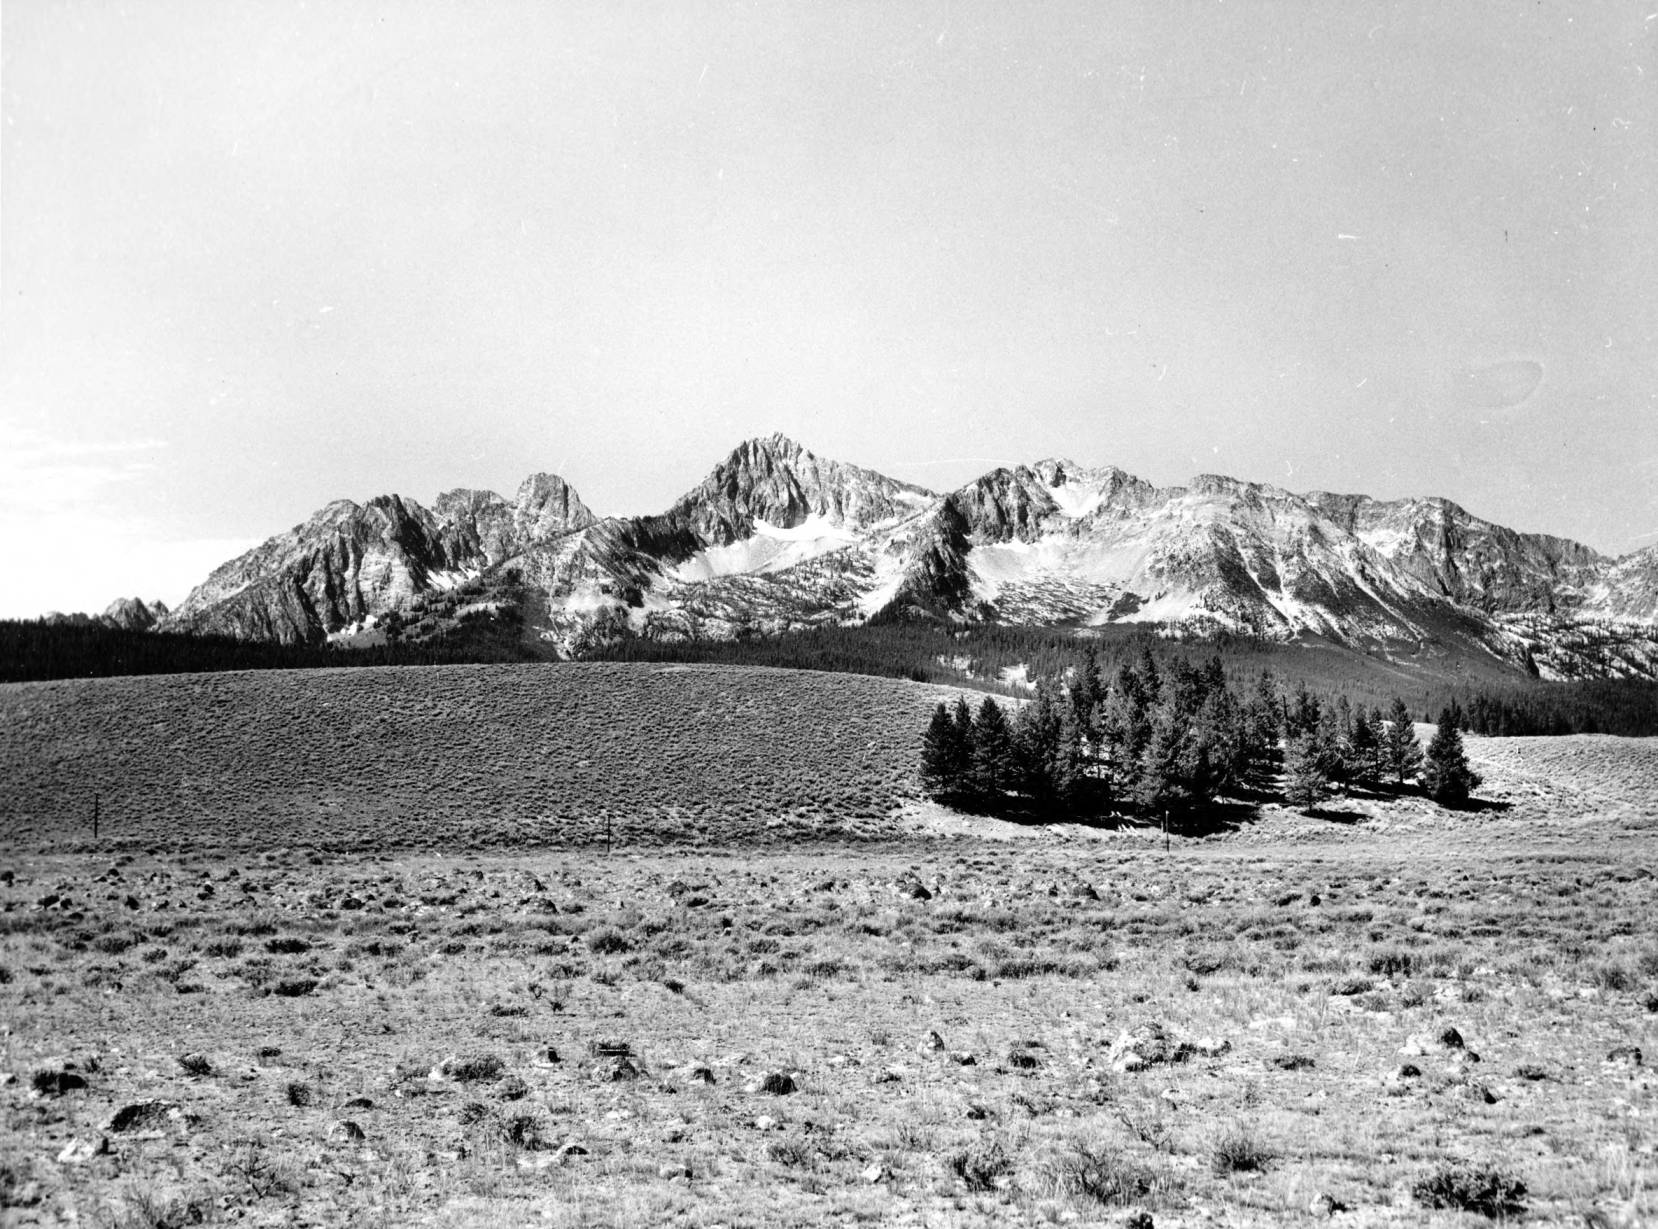 item thumbnail for Route 21, 3 miles south of Stanley, Sawtooth Range in background